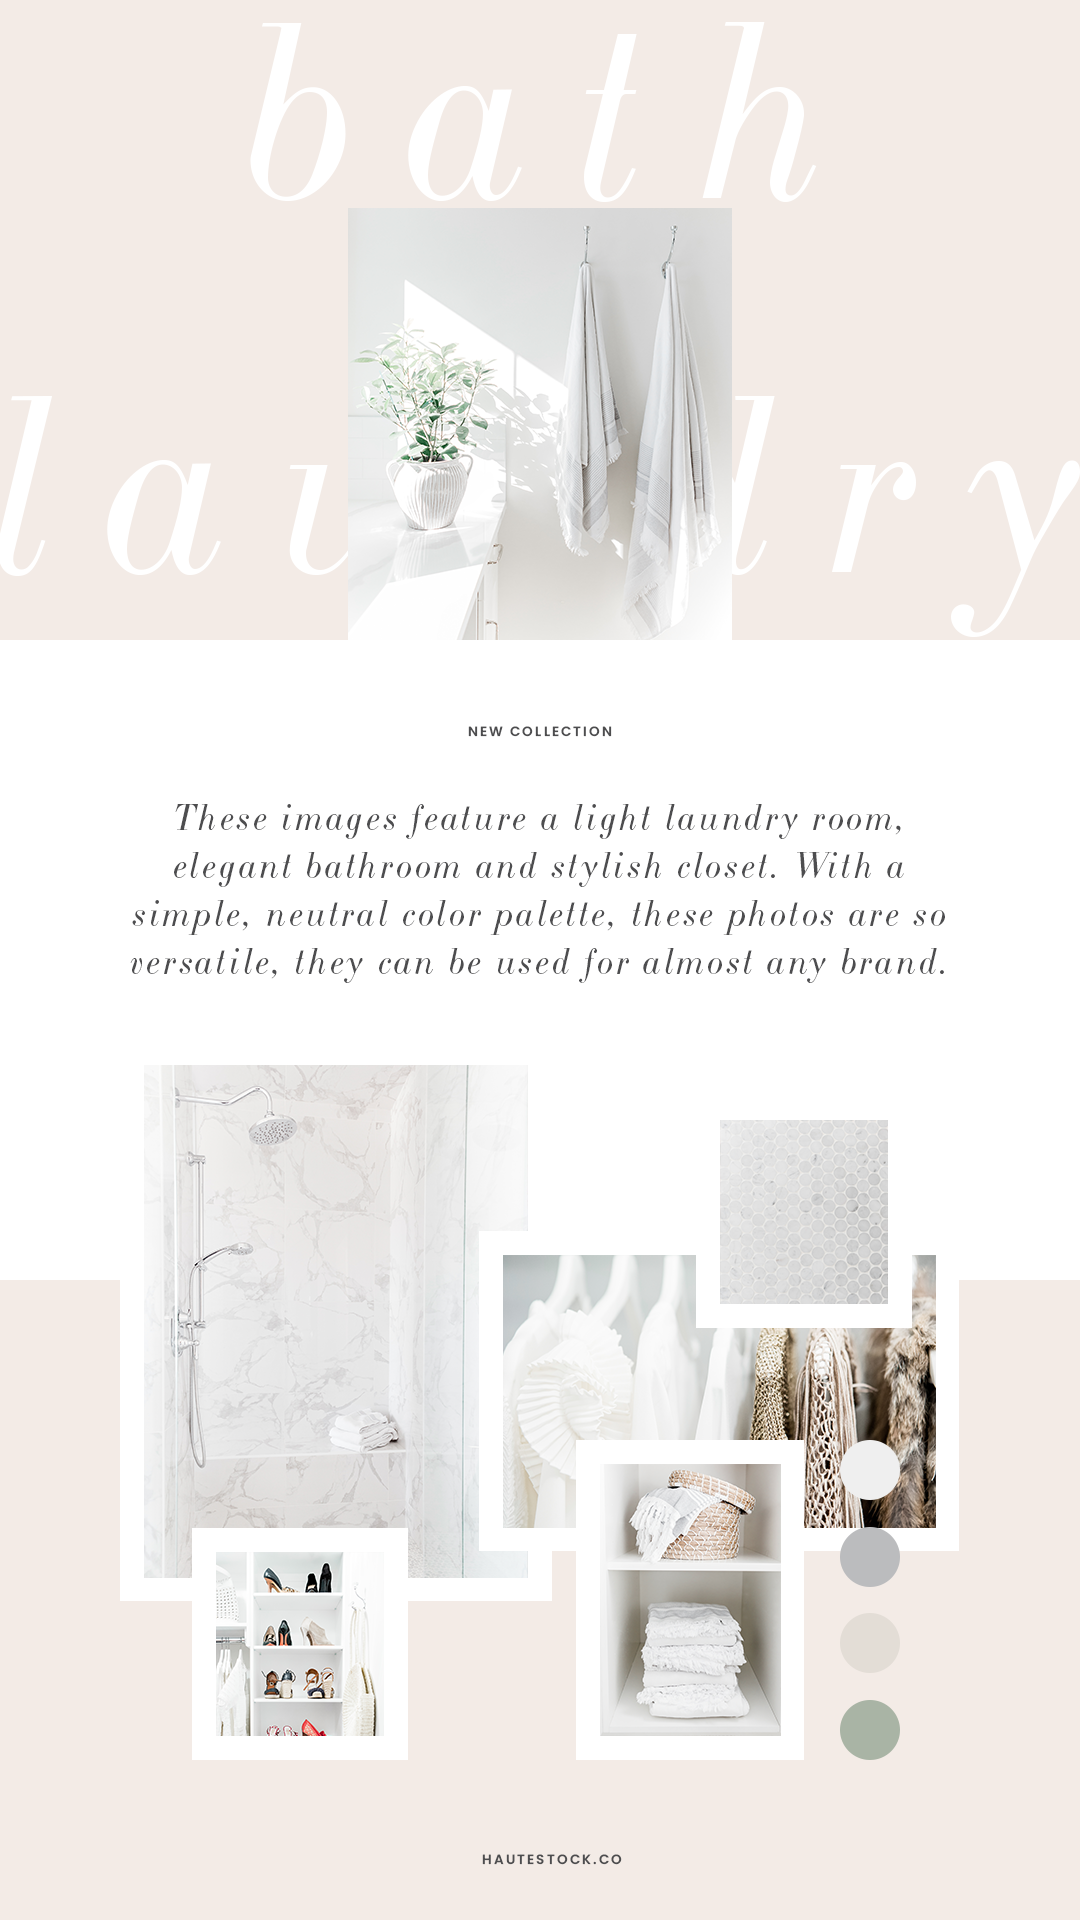 Beautiful, neutral home interior styled stock photos for women business owners, realtors, interior designers, and home organizer from Haute Stock. Click to preview the entire Laundry & Bath collection.